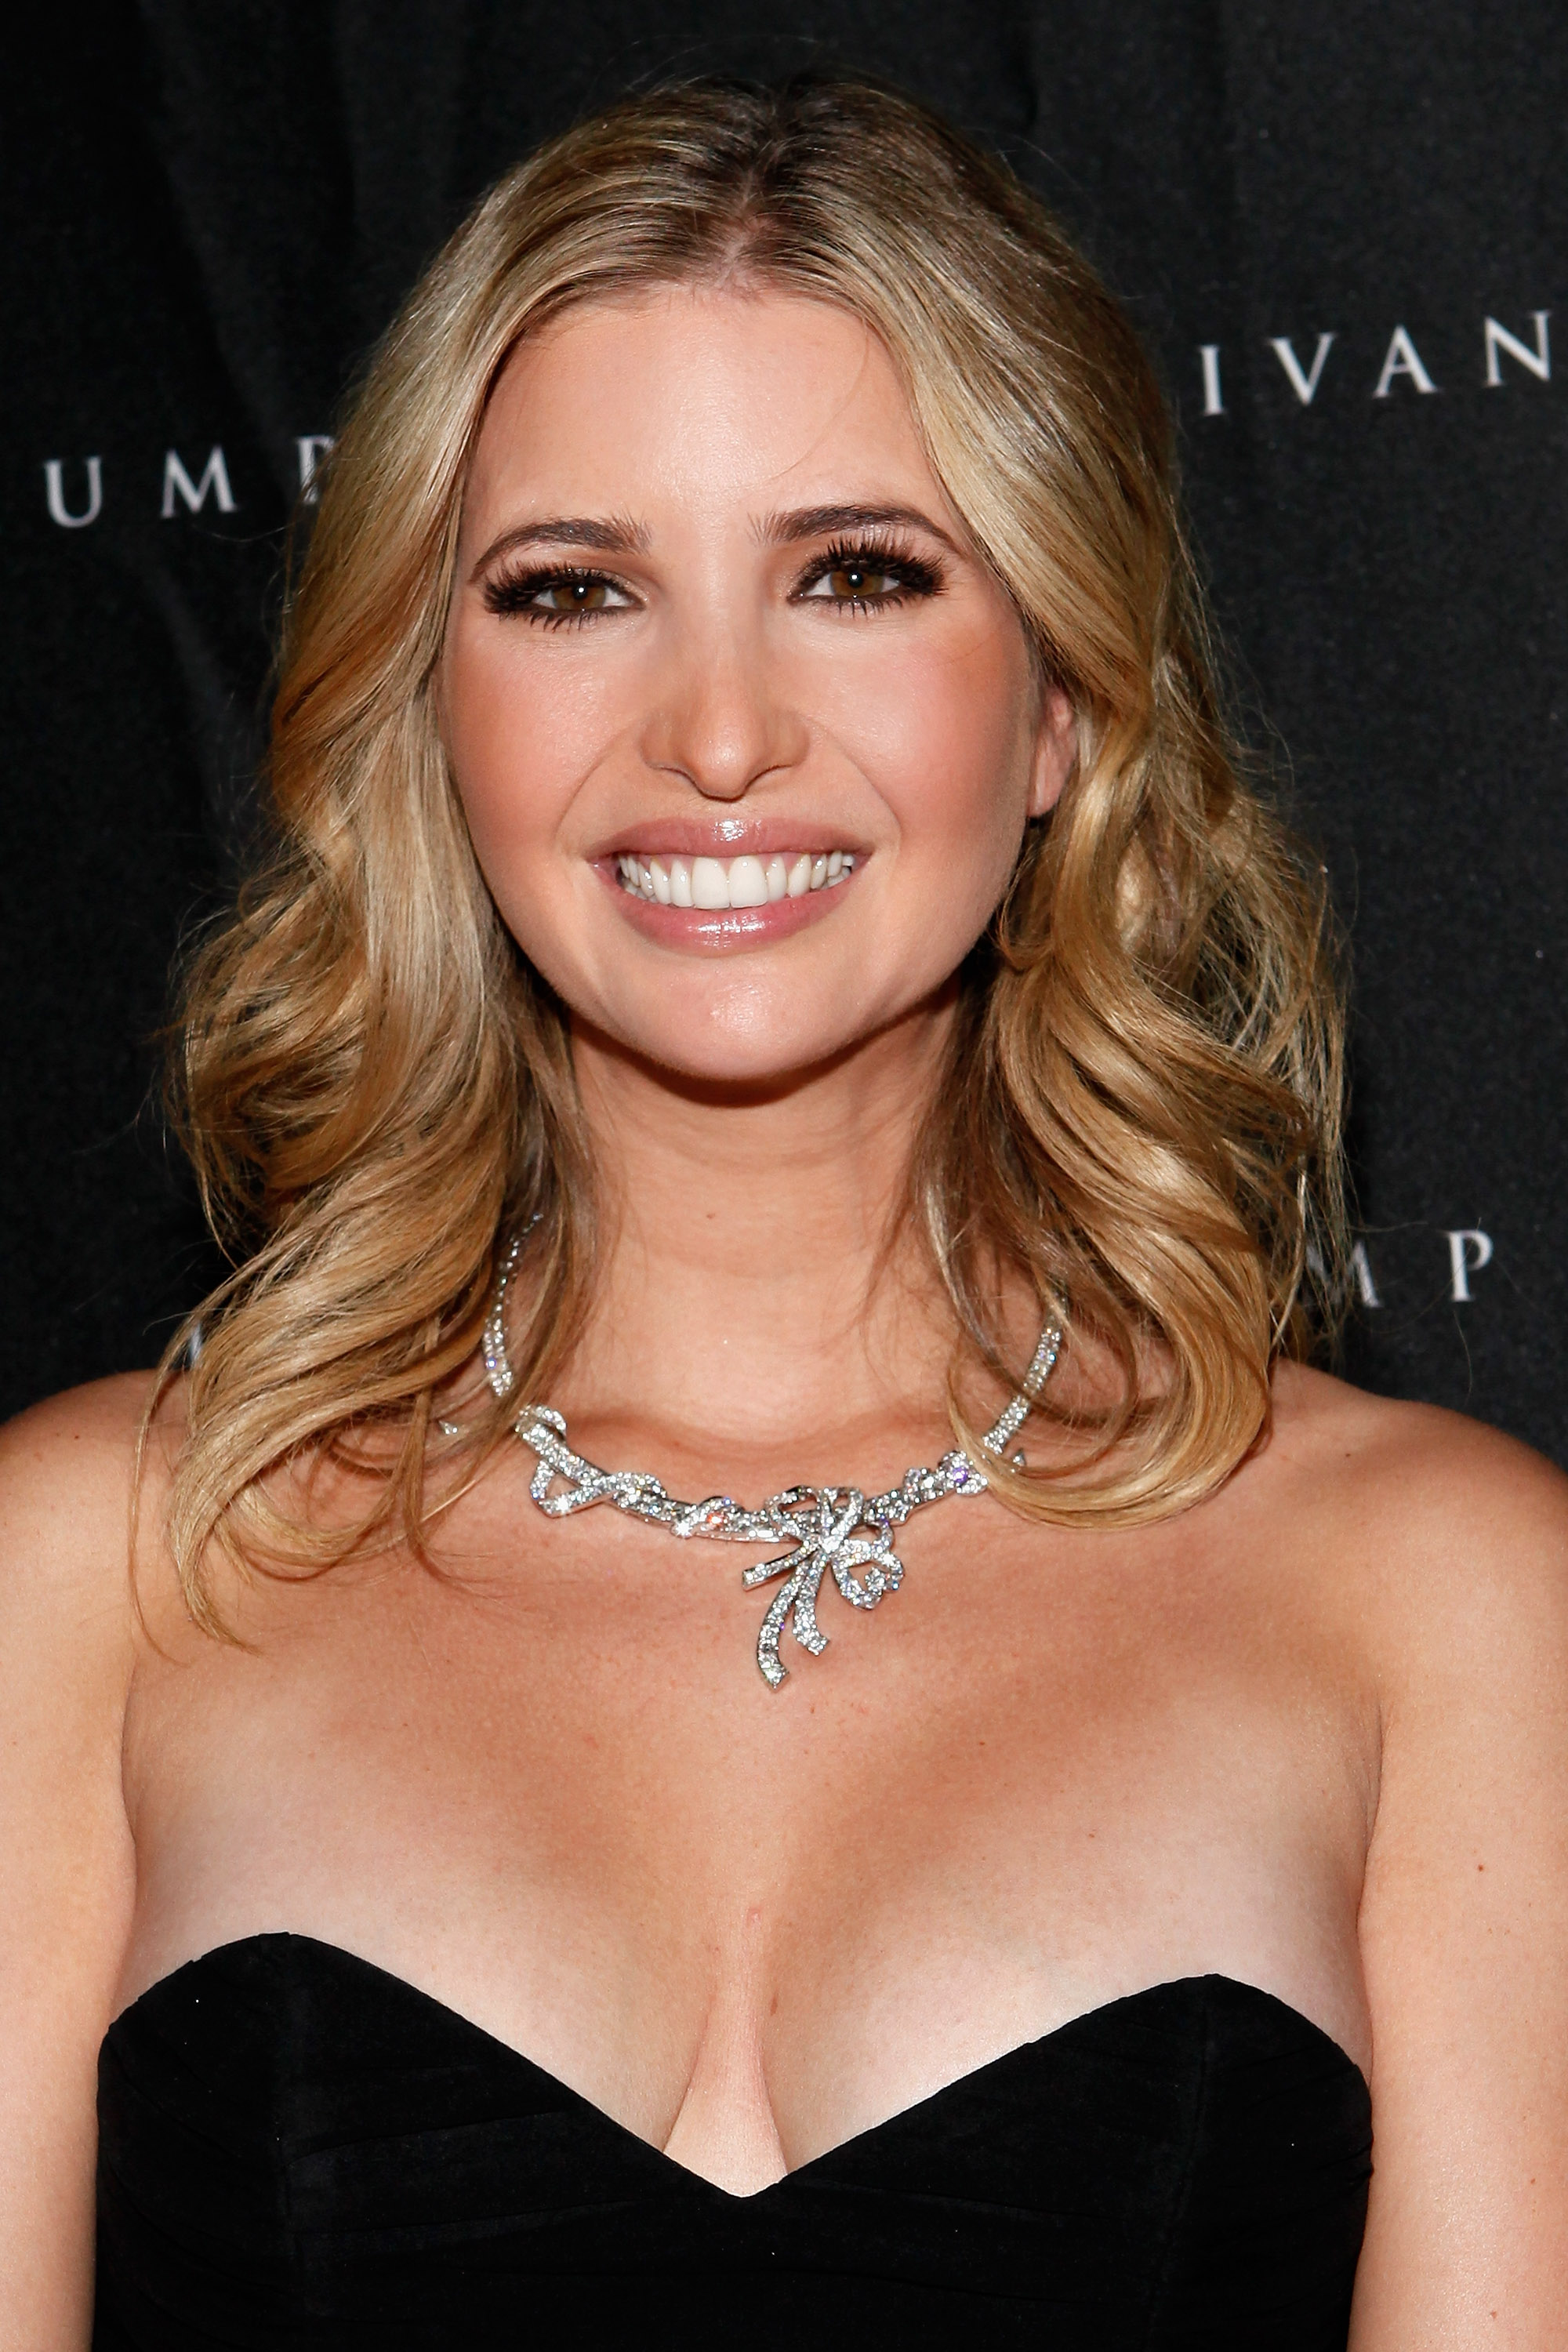 [Image: Ivanka-Trump-smiled-her-jewelry-launch.jpg]